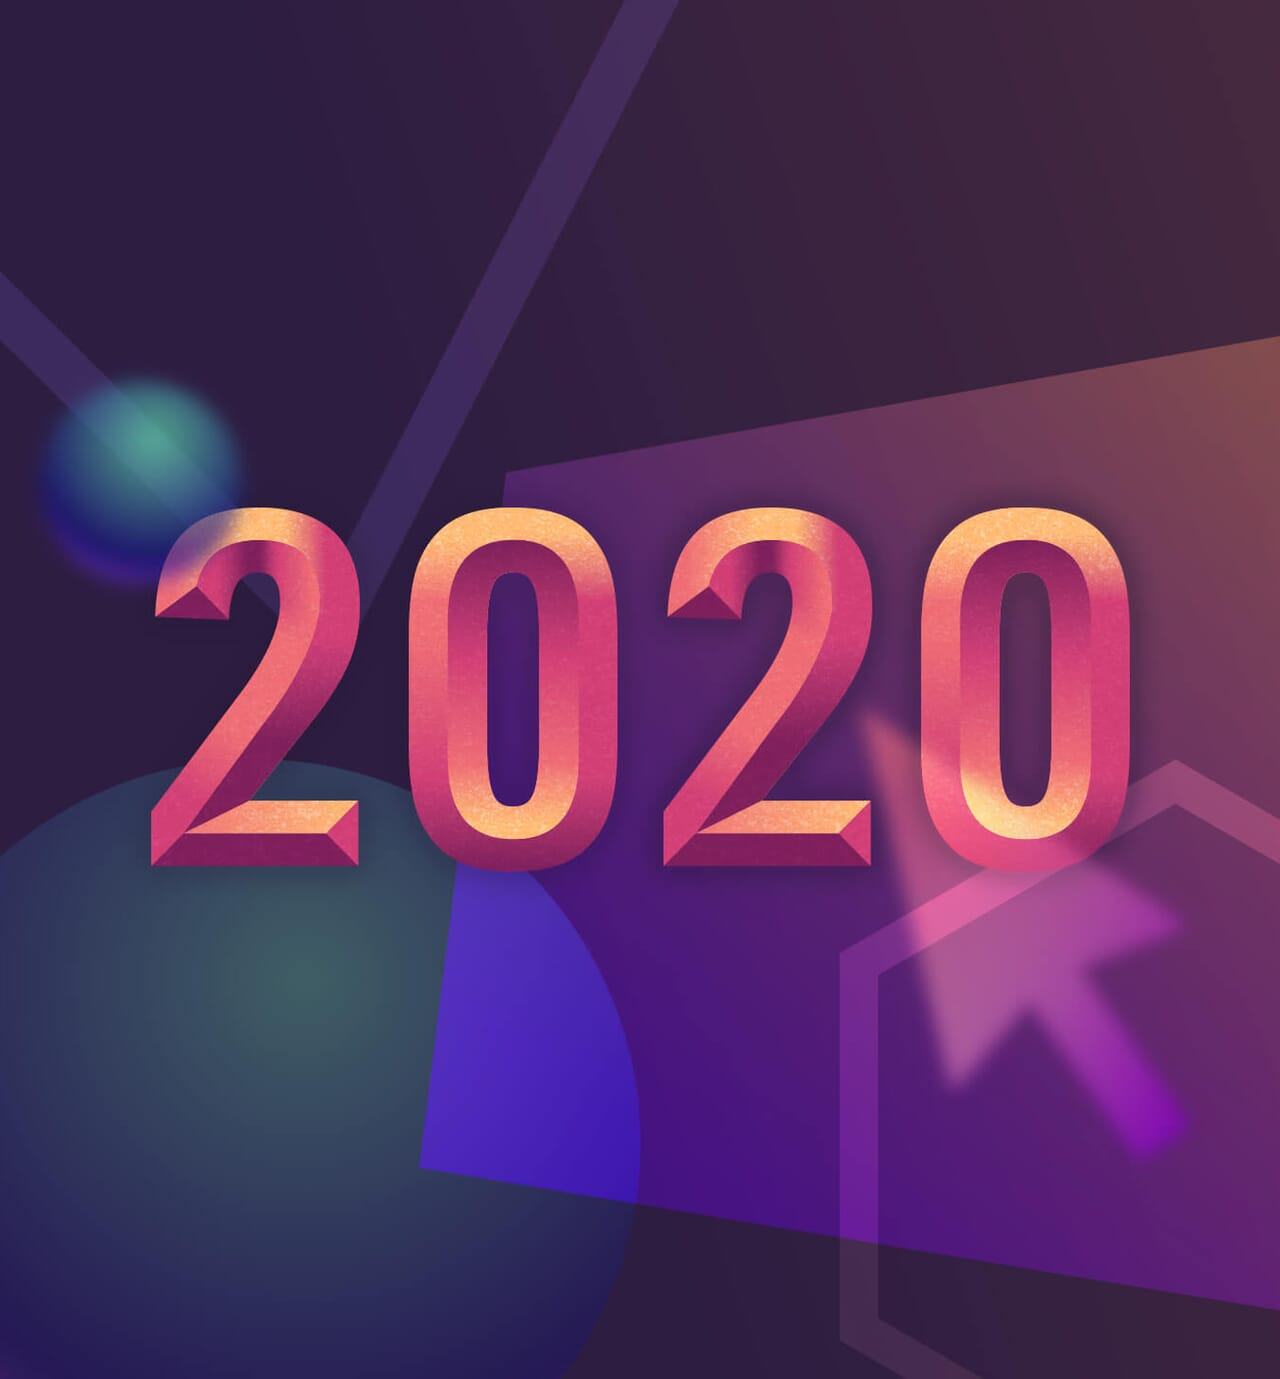 web-design-trends-2020.jpg?w=1280&h=1379&scale